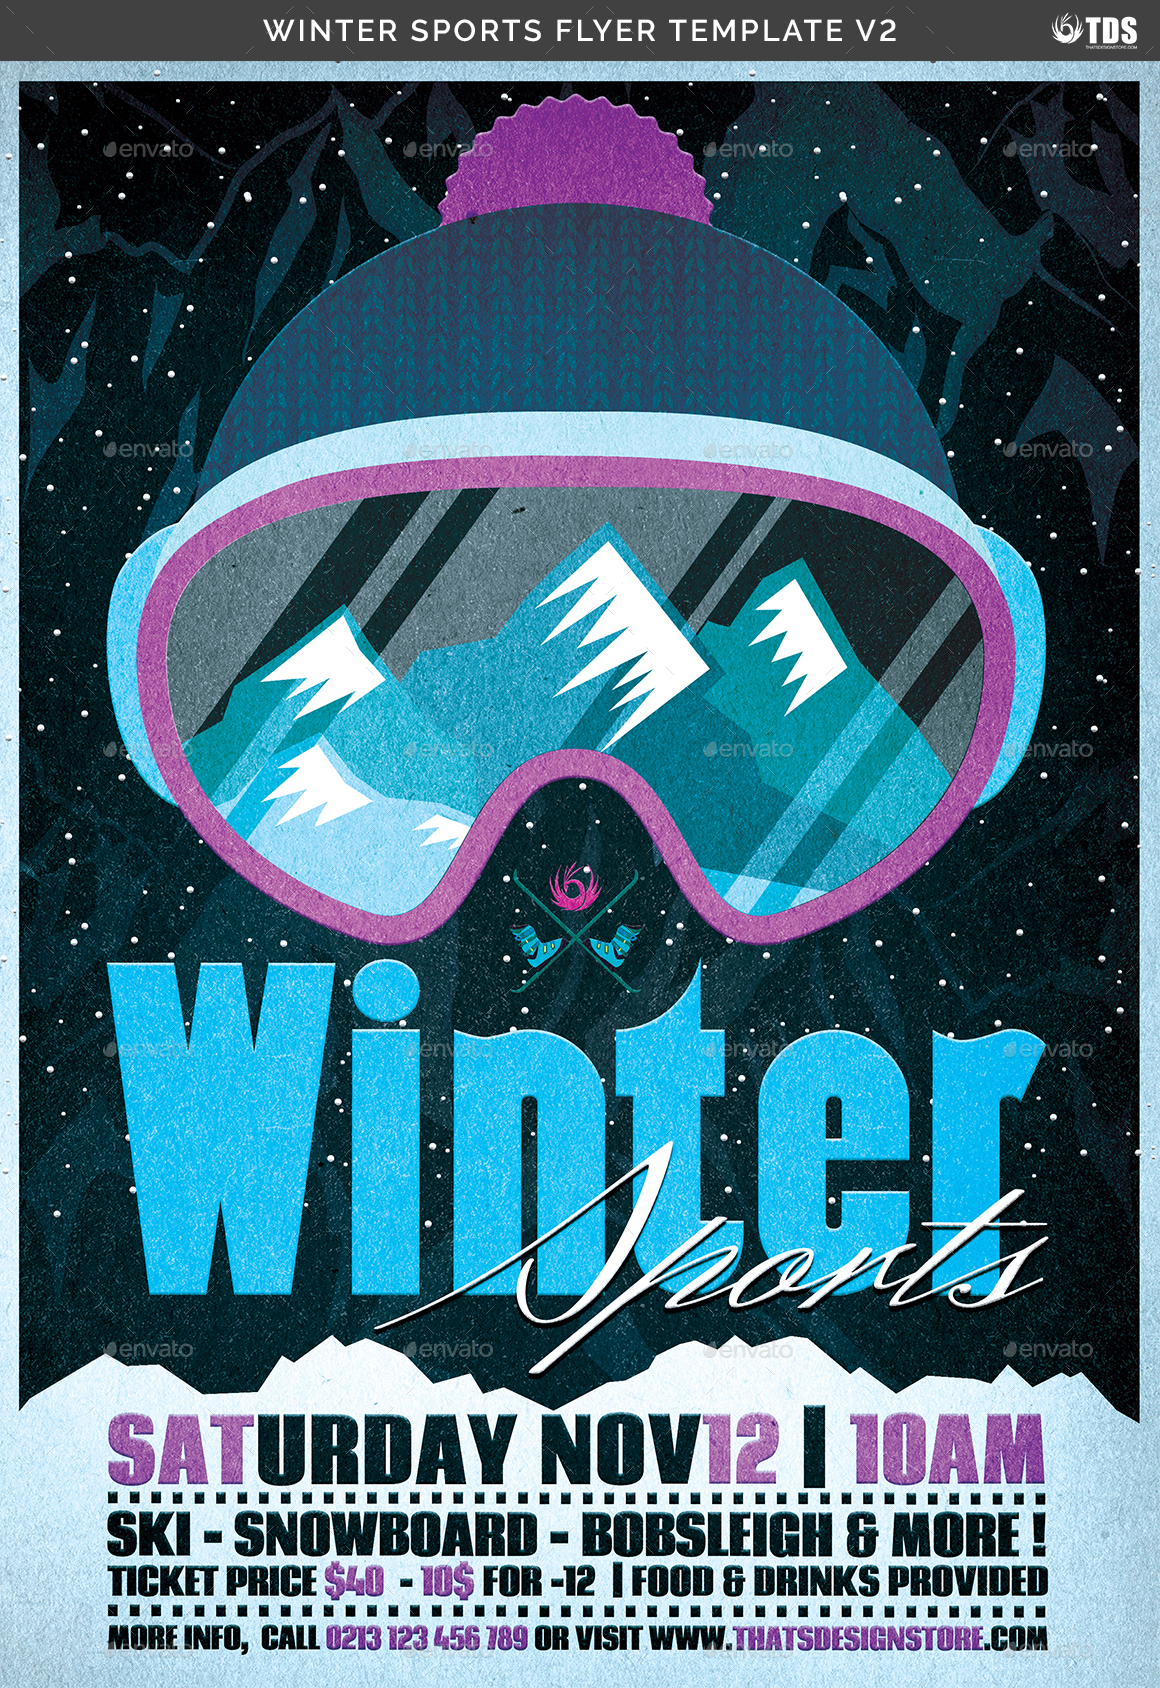 winter sports flyer template v2 by lou606 graphicriver